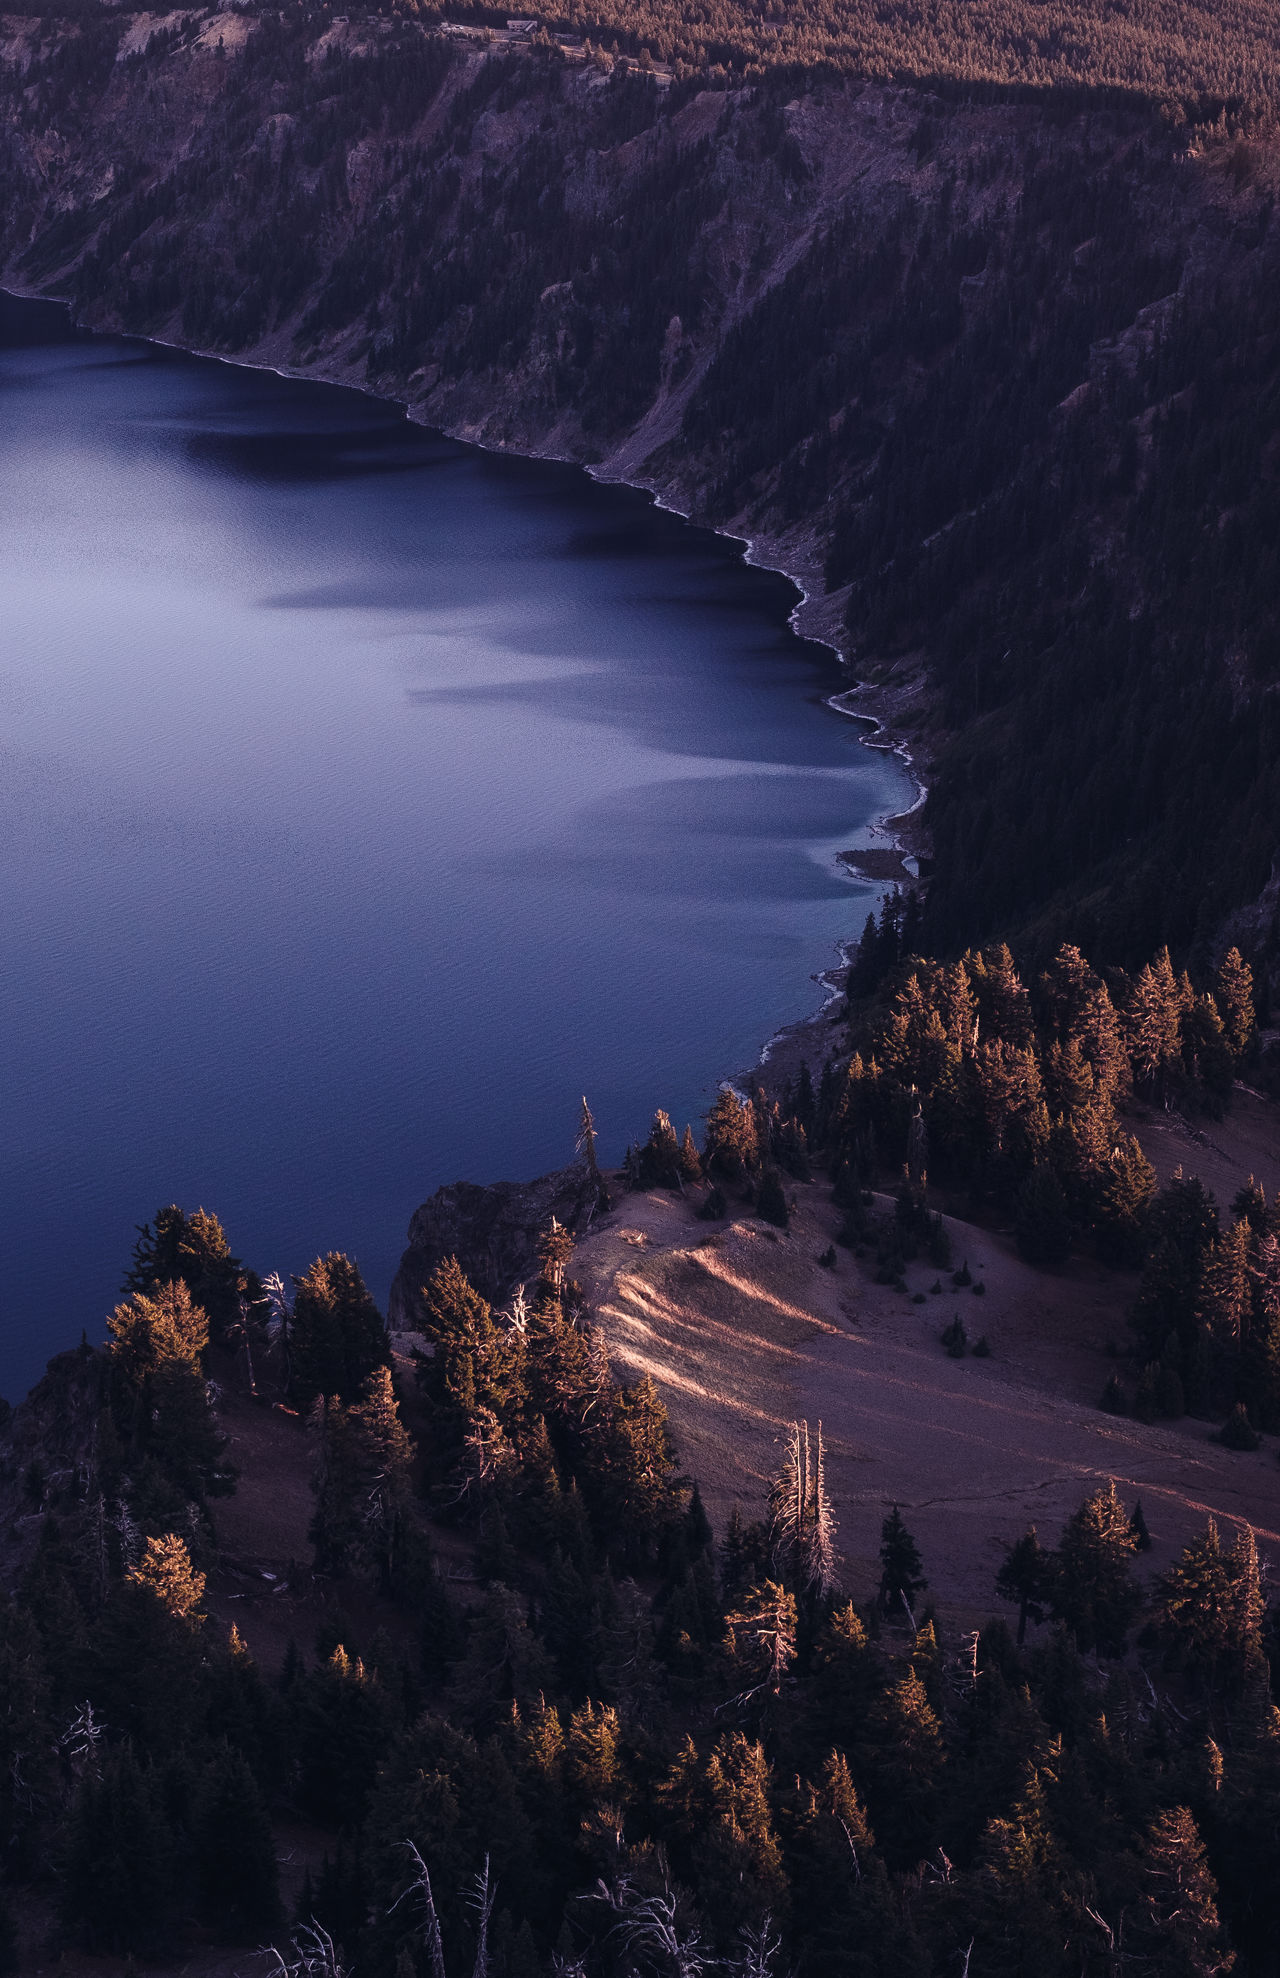 Claw Marks Adventure Beauty In Nature Crater Lake National Park Elevated View Growth Lake National Park Nature No People Oregon, Seaside, Outdoors Pacific Northwest  Pine Tree Scenics Shadows Sunset Travel Tree United States Water My Year My View Finding New Frontiers Flying High